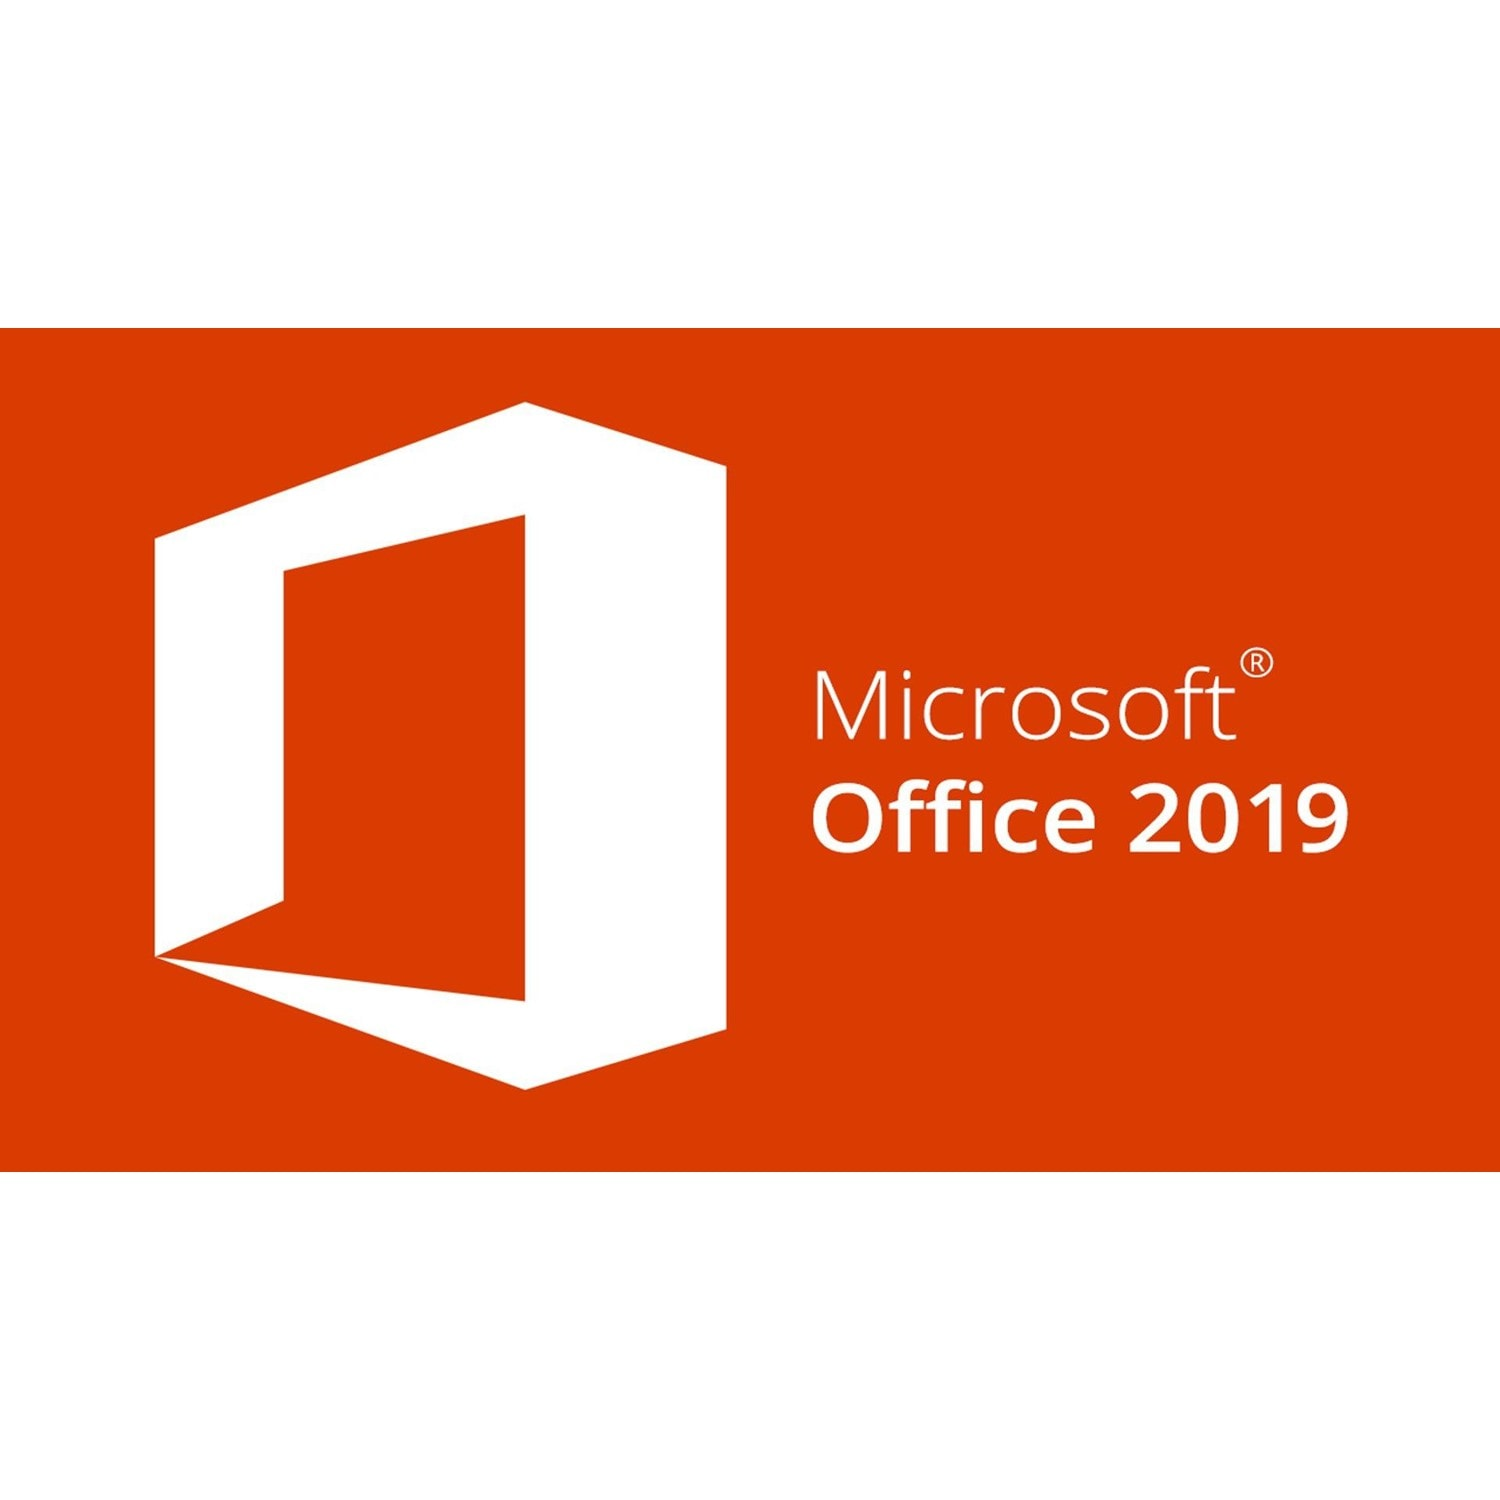 Buy Microsoft Office 2019 Home & Business for Windows 10